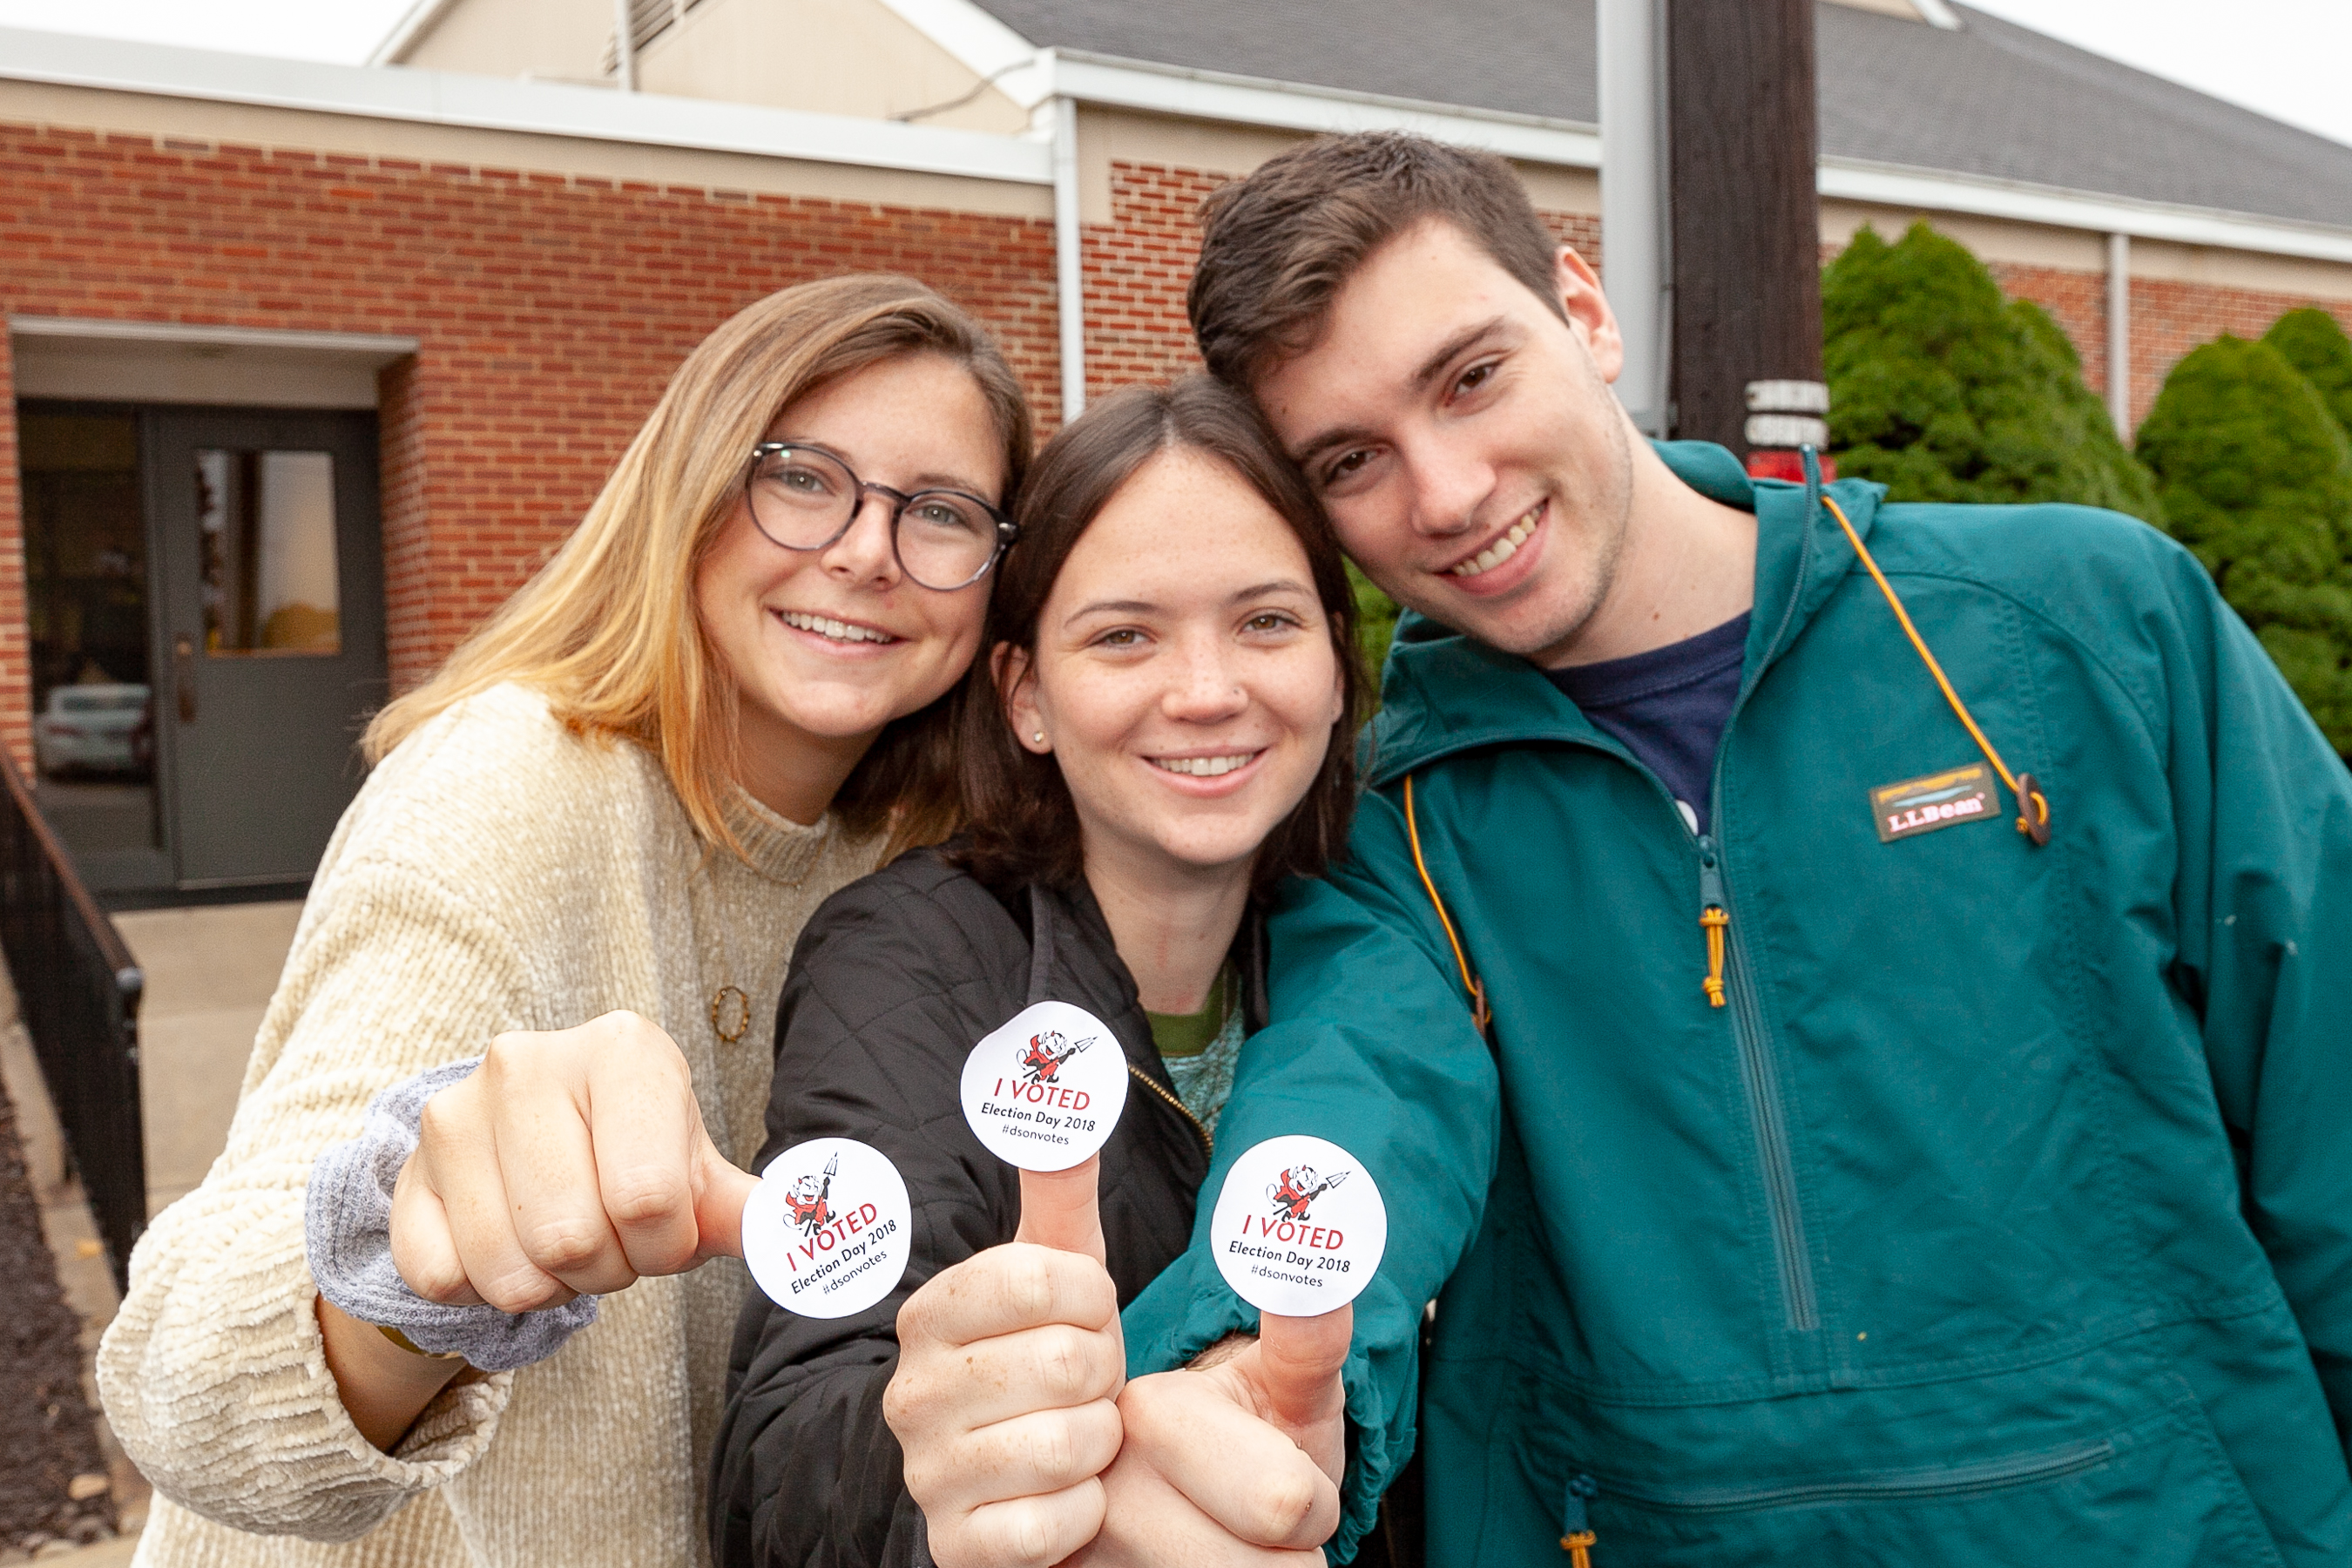 Three students displaying their I Voted stickers.